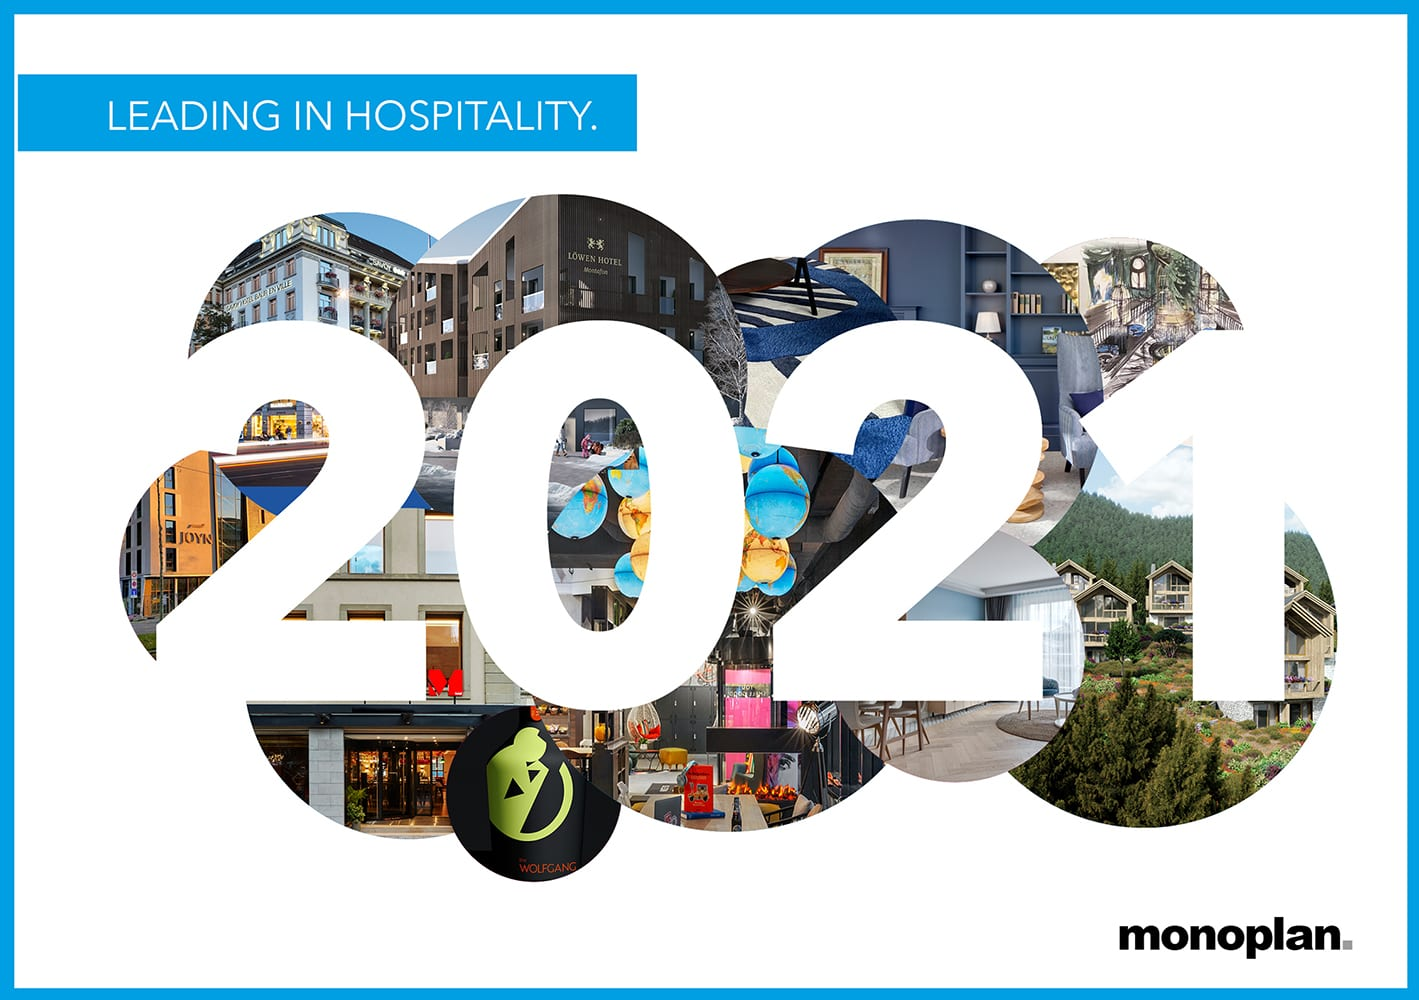 Leading in hospitality 2021